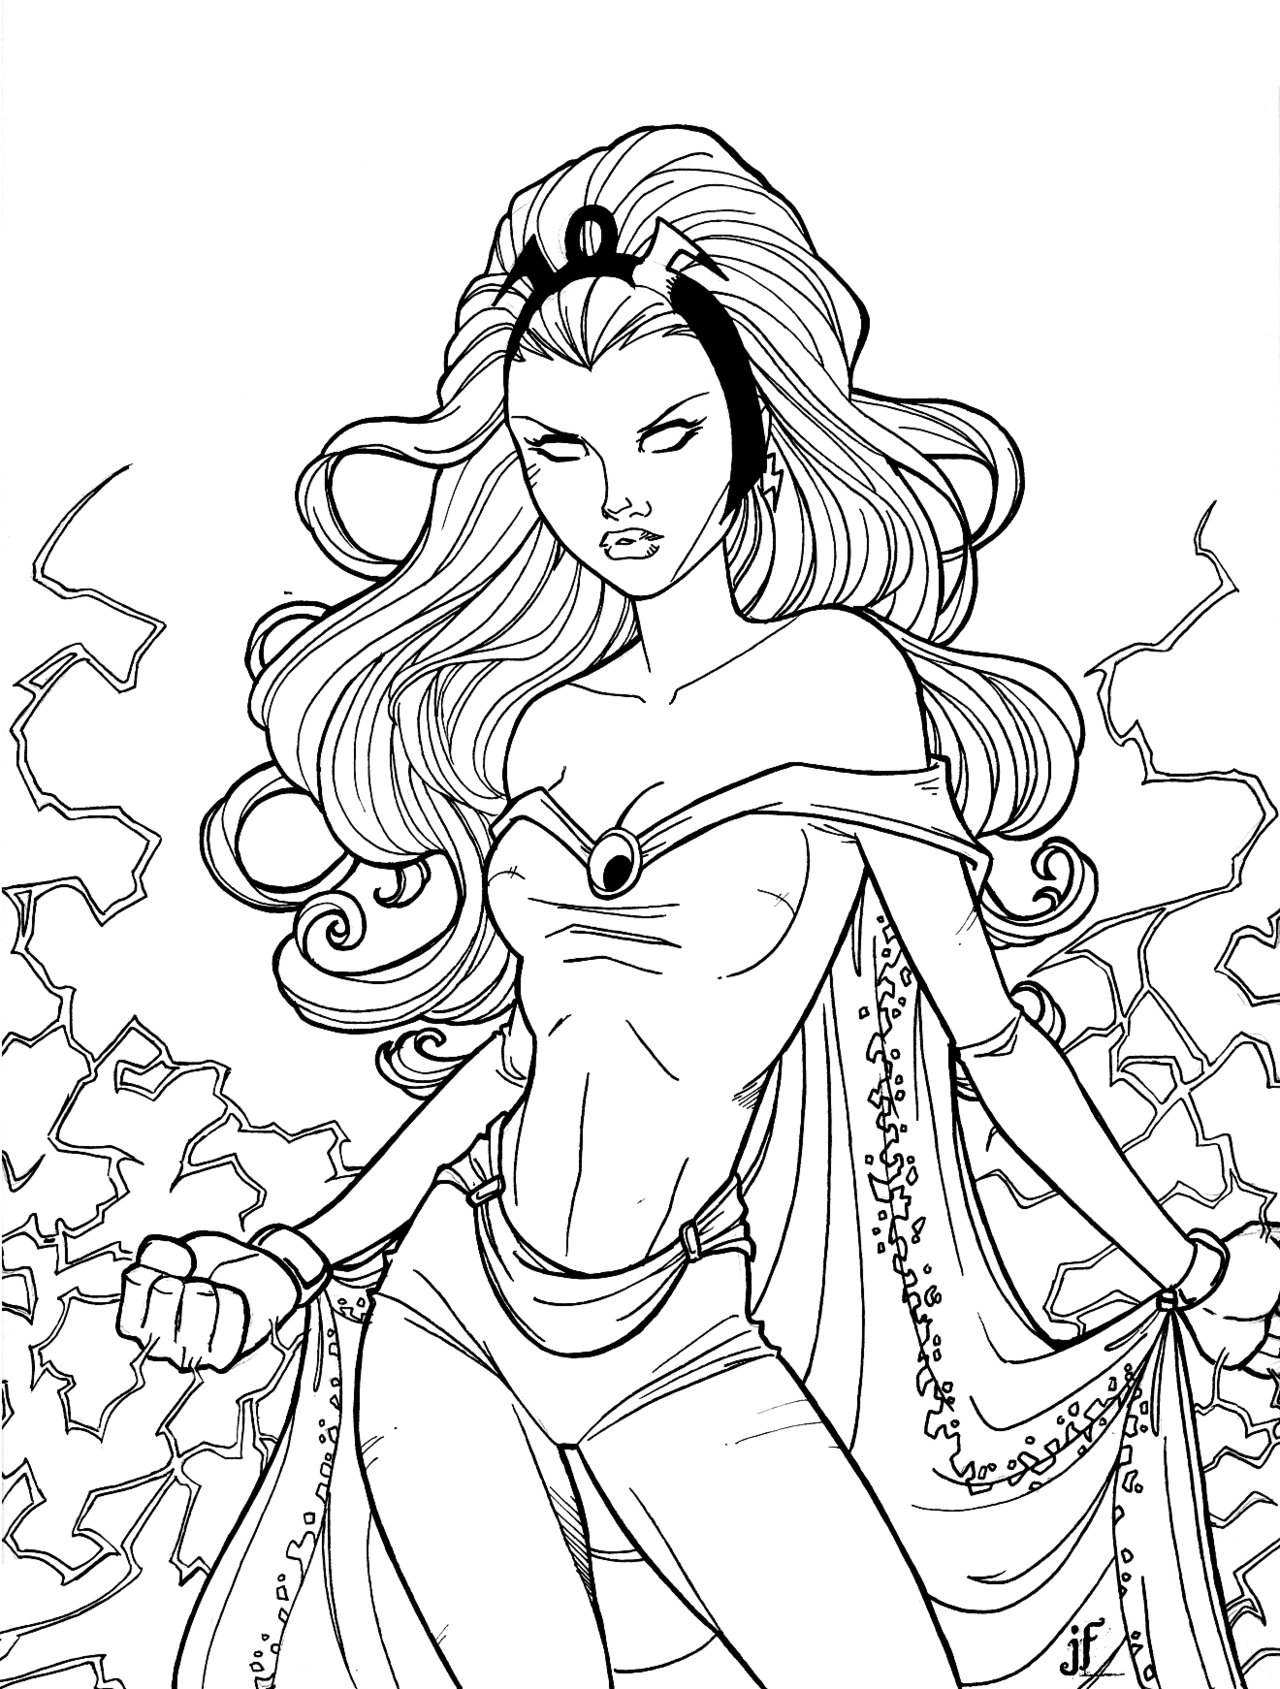 Storm superhero coloring pages and print for free